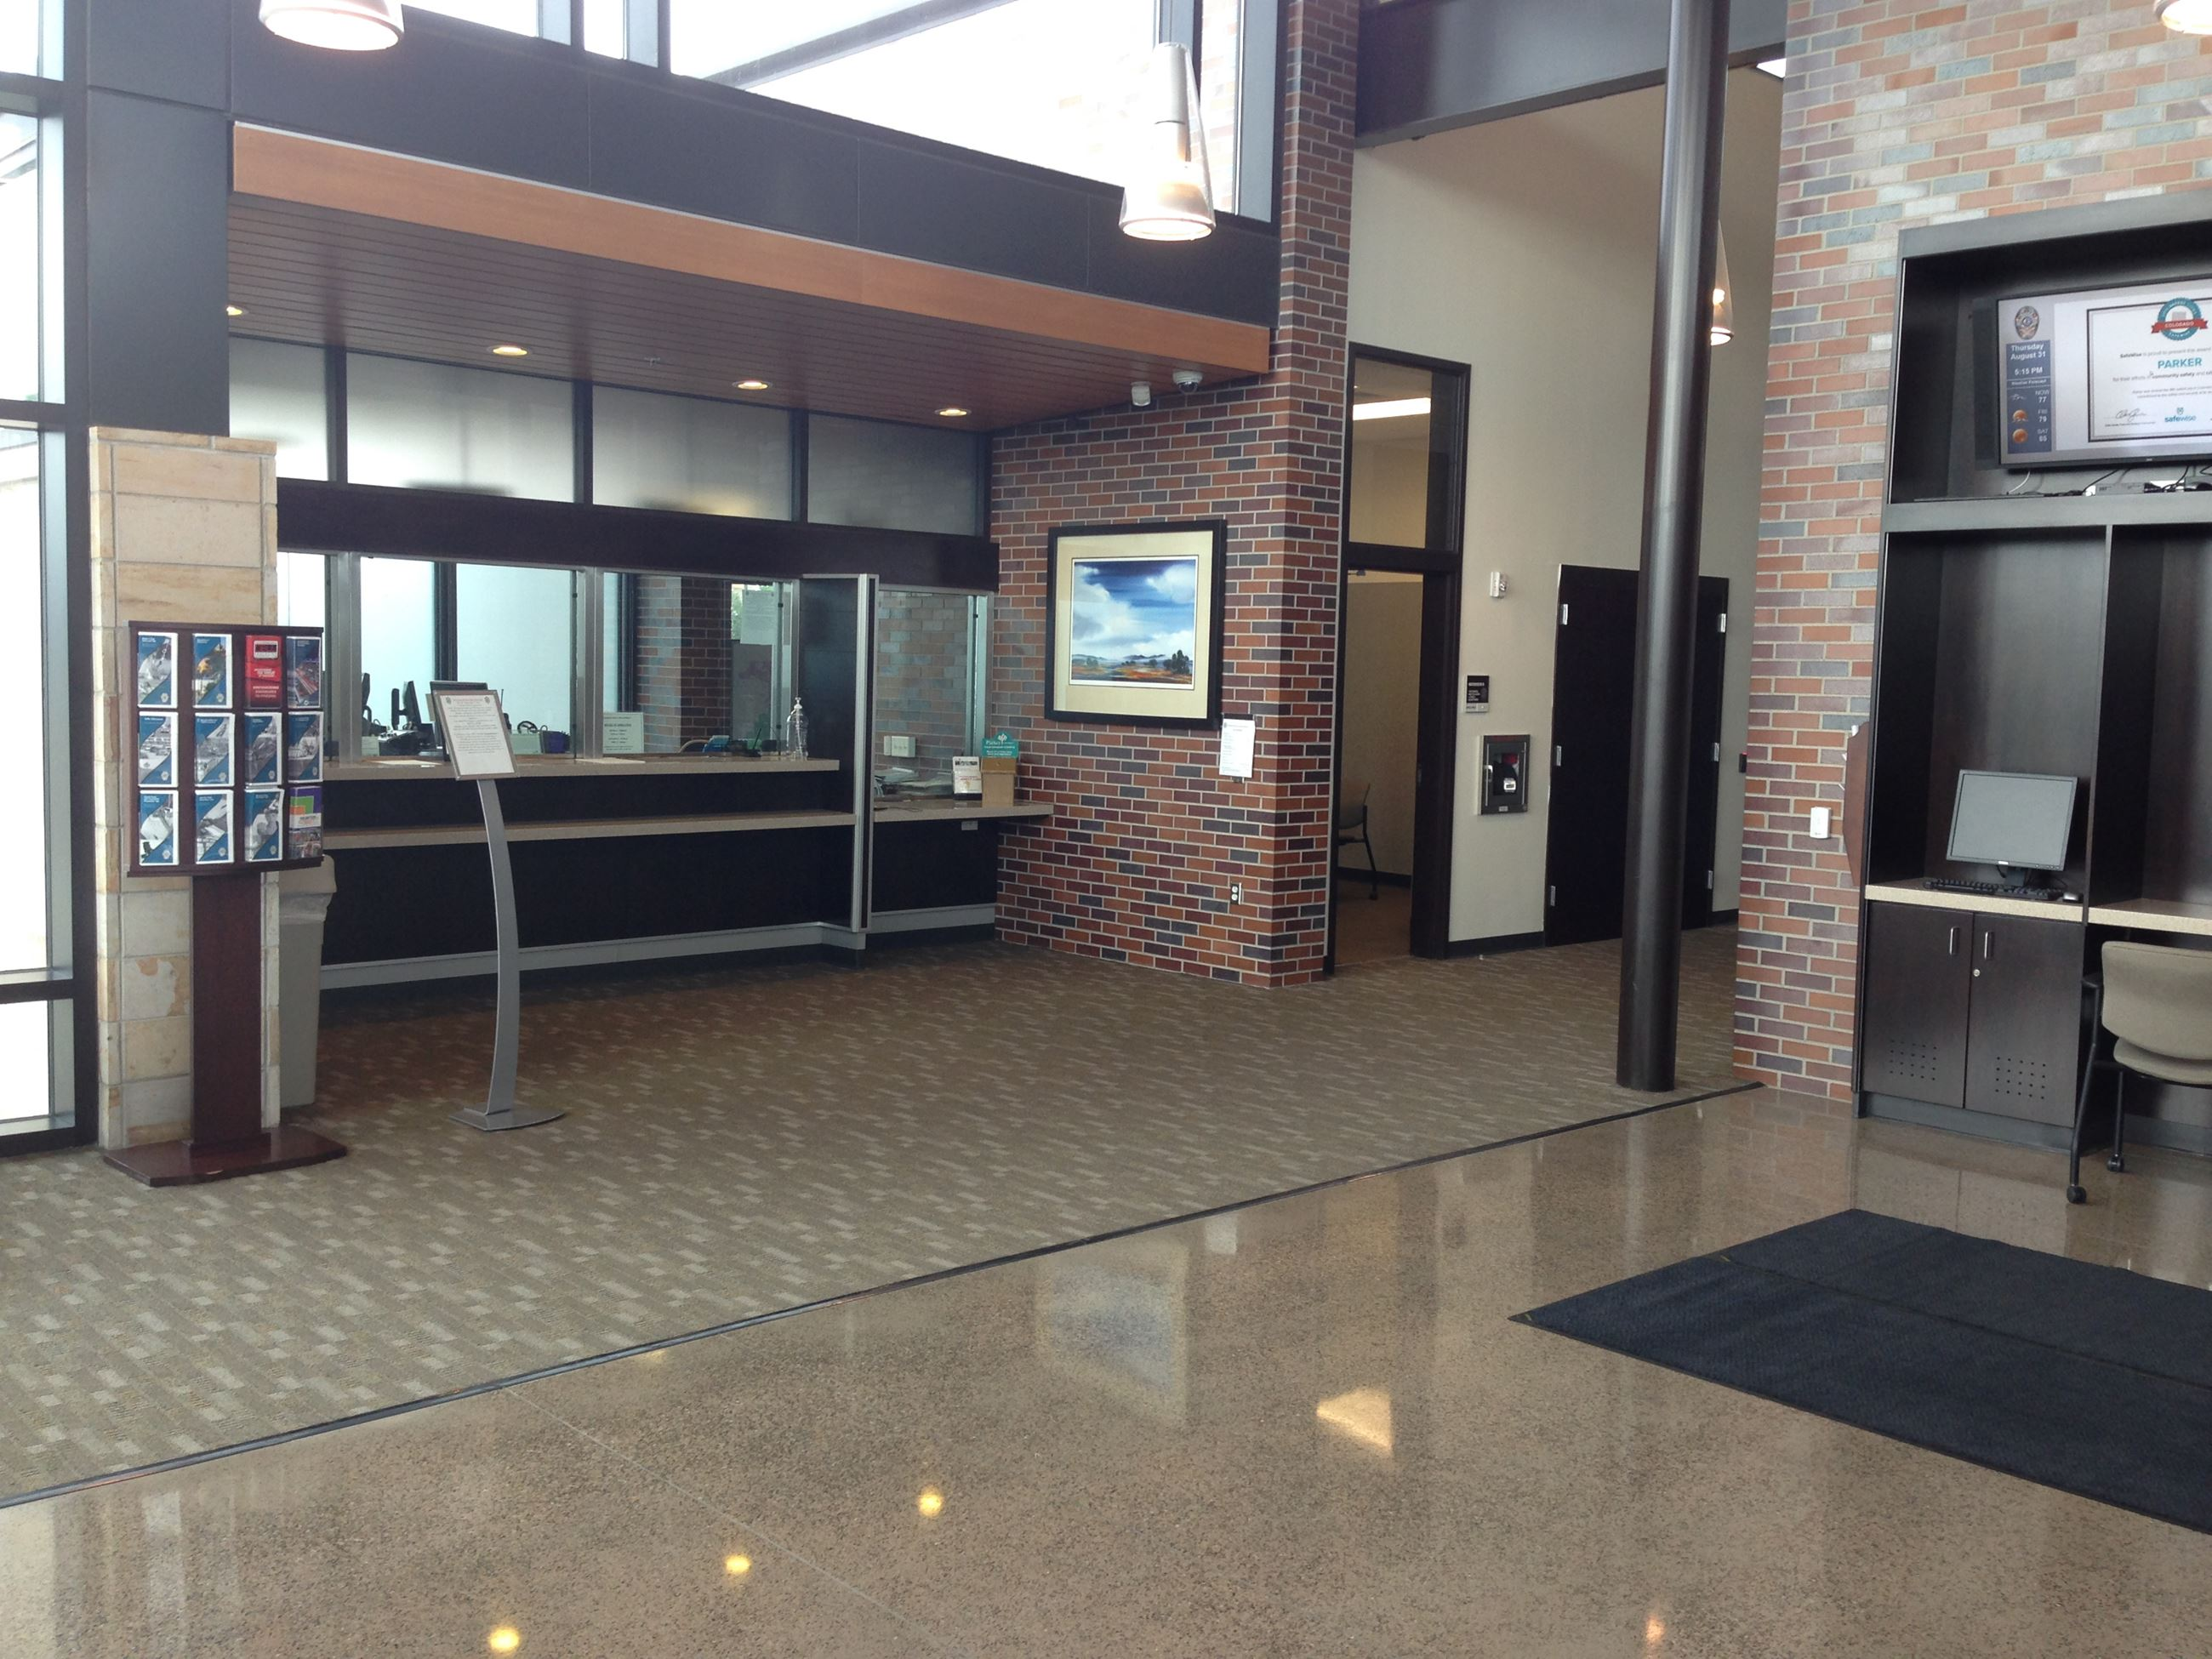 Photo of the Parker PD front lobby